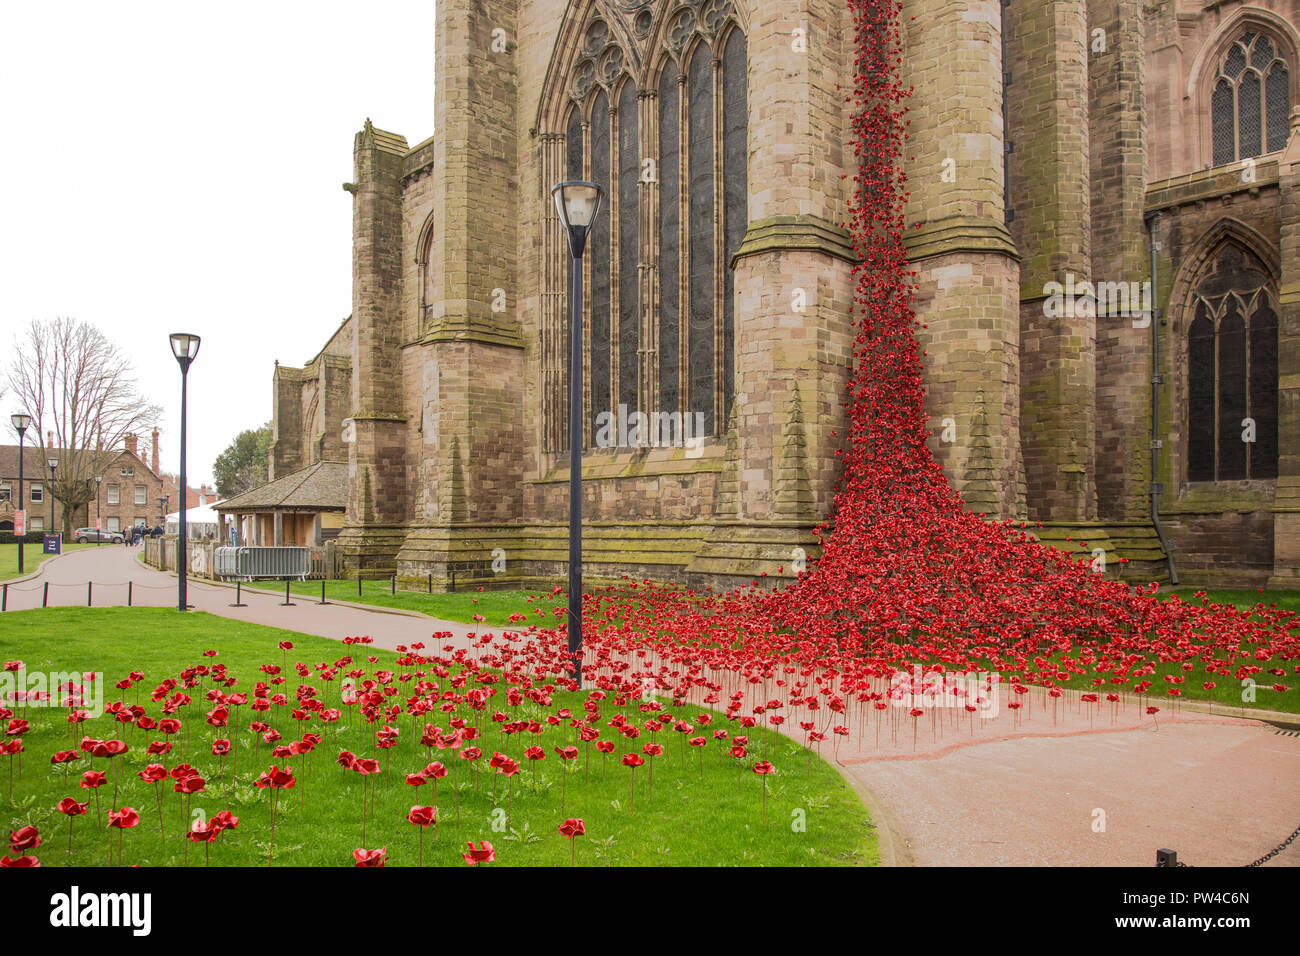 Weeping window, Hereford Cathedral - Stock Image